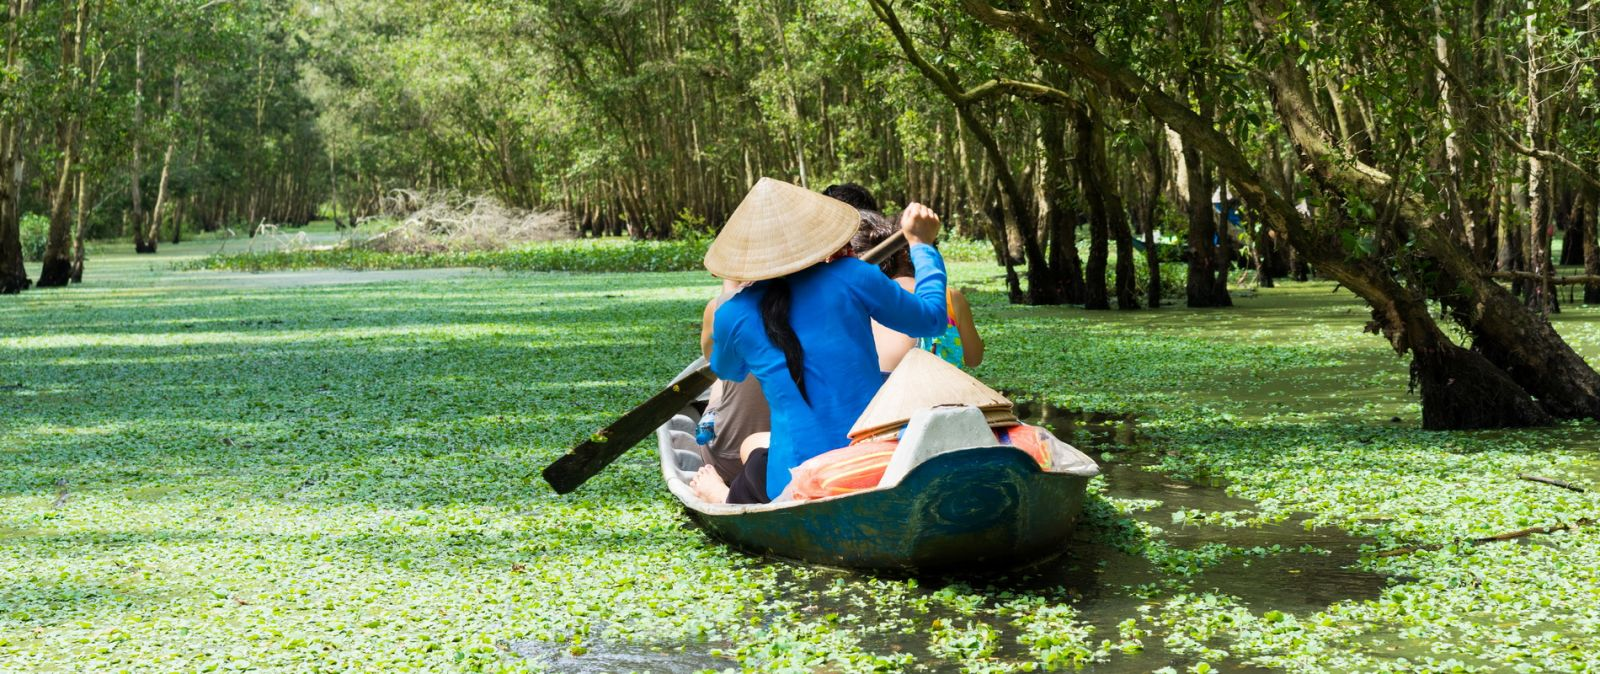 DISCOVER MEKONG DELTA IN FLOATING WATER SEASON